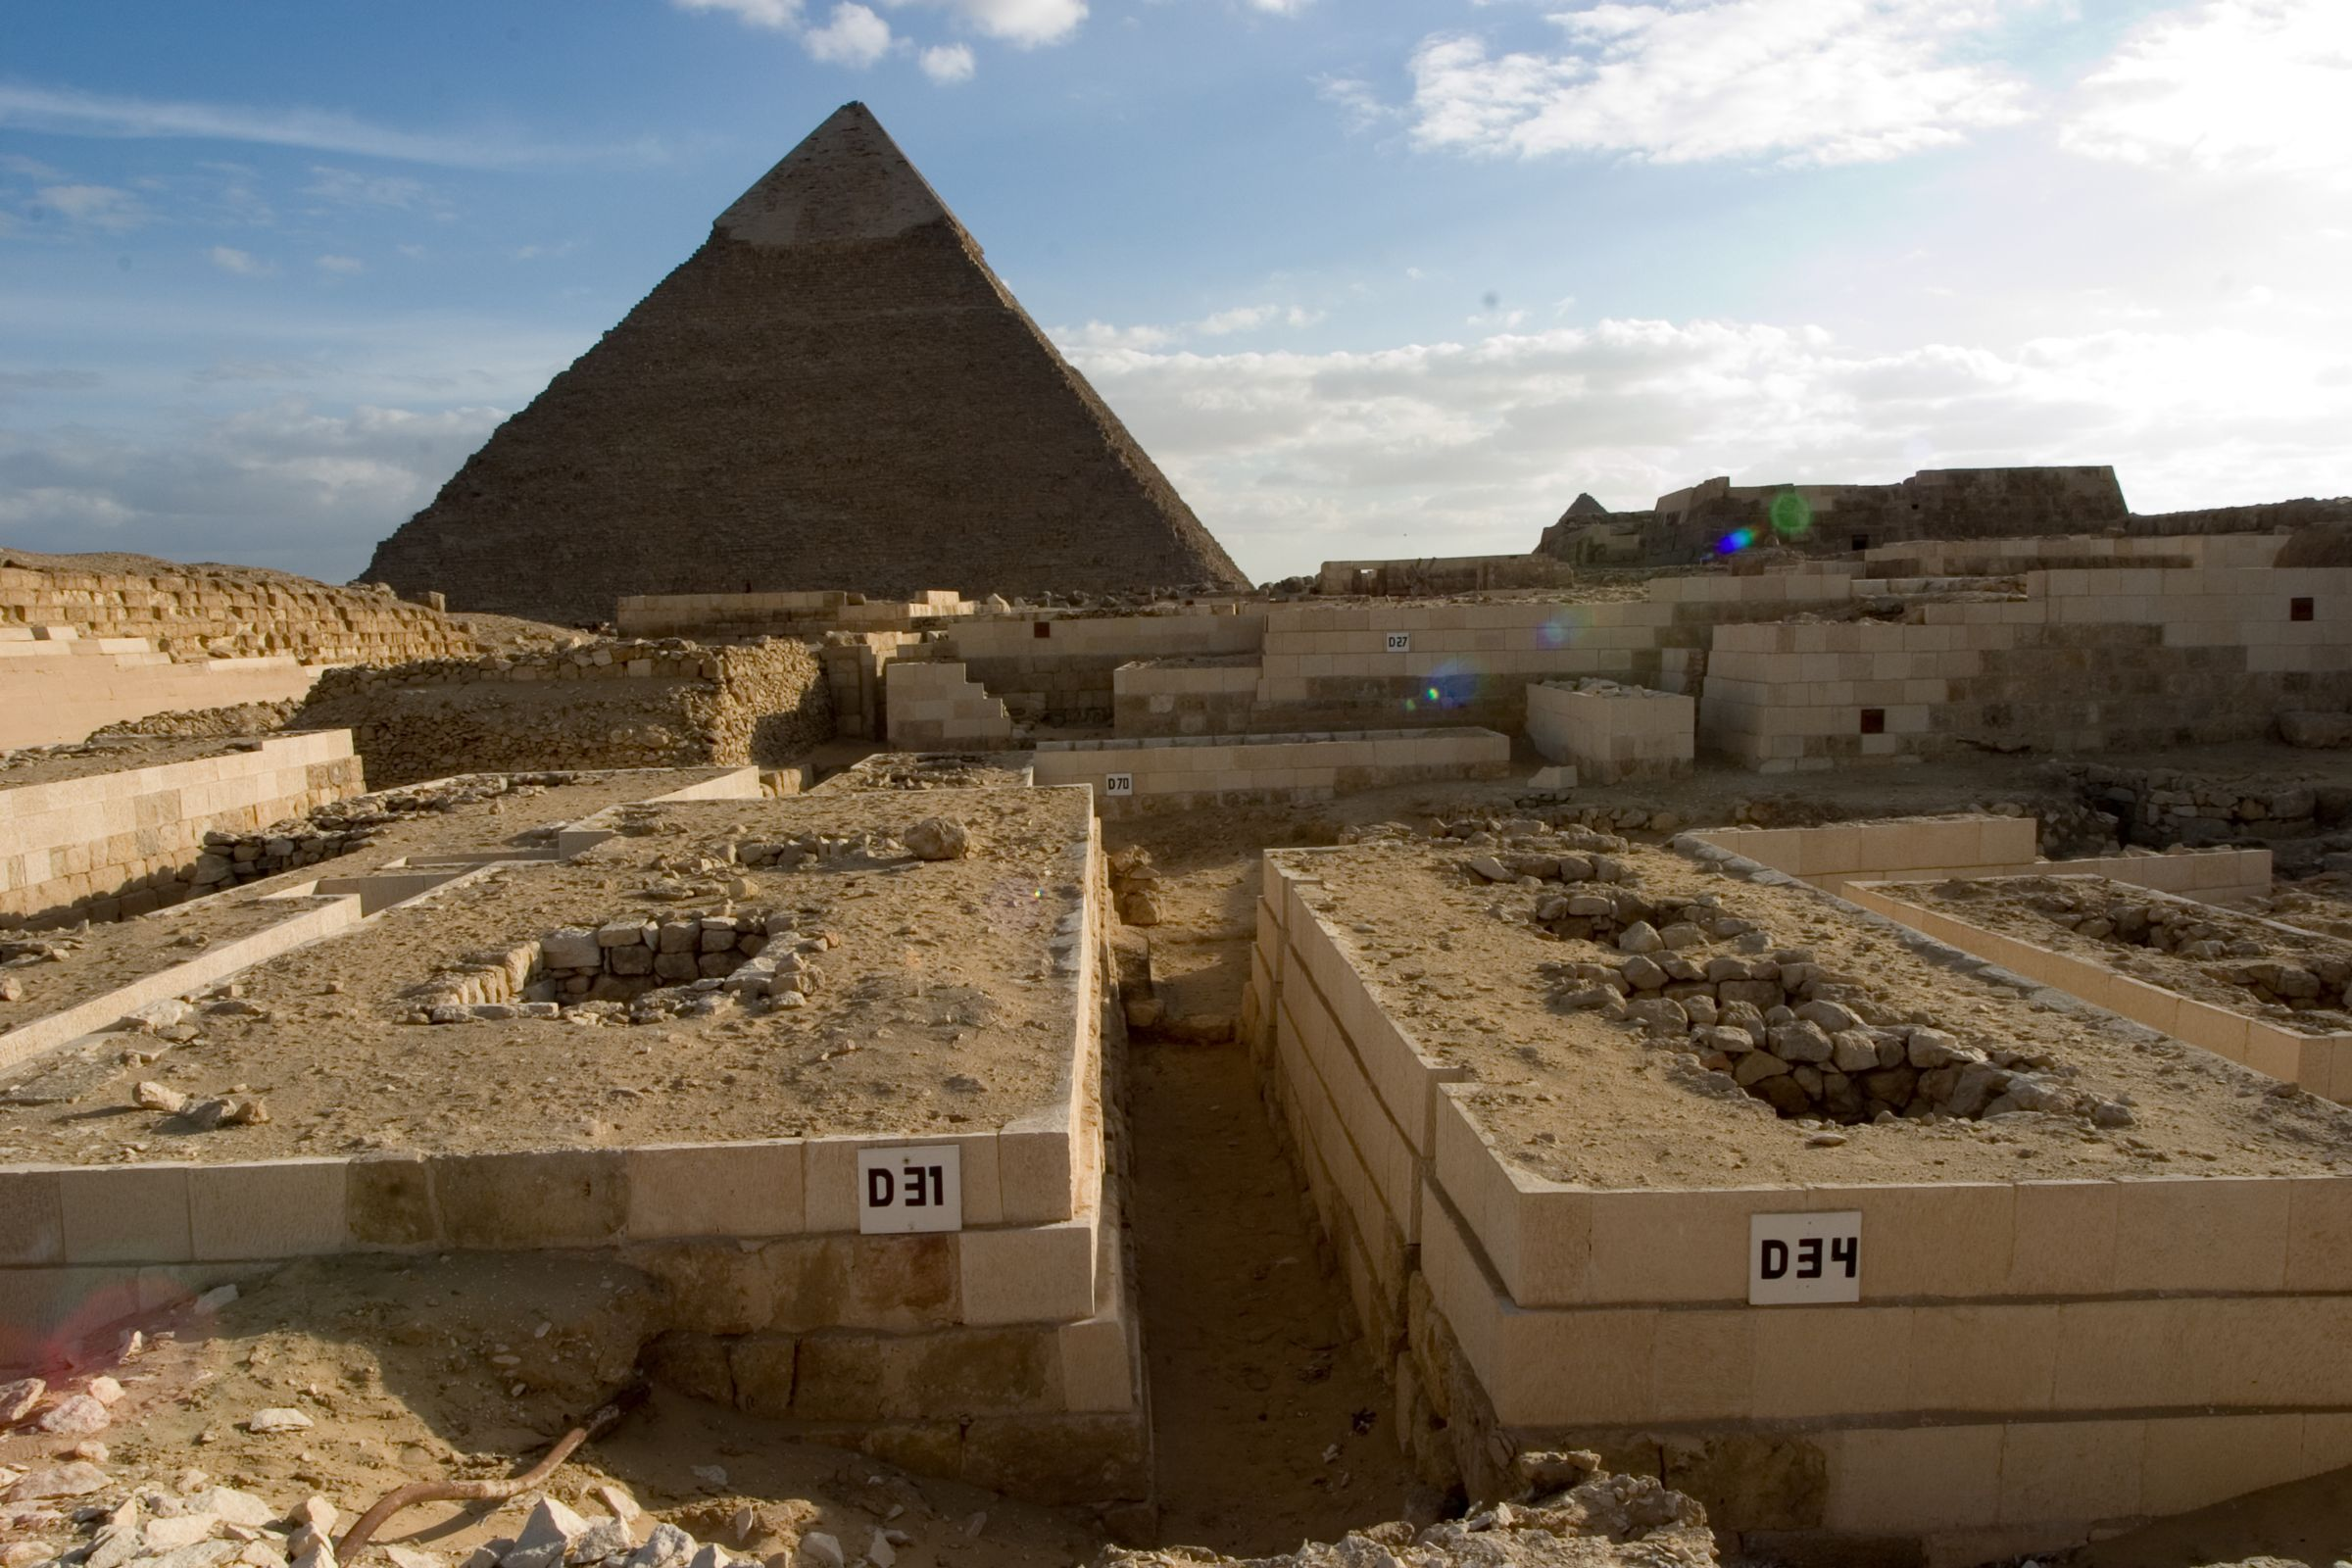 Western Cemetery: Site: Giza; View: D 31, D34